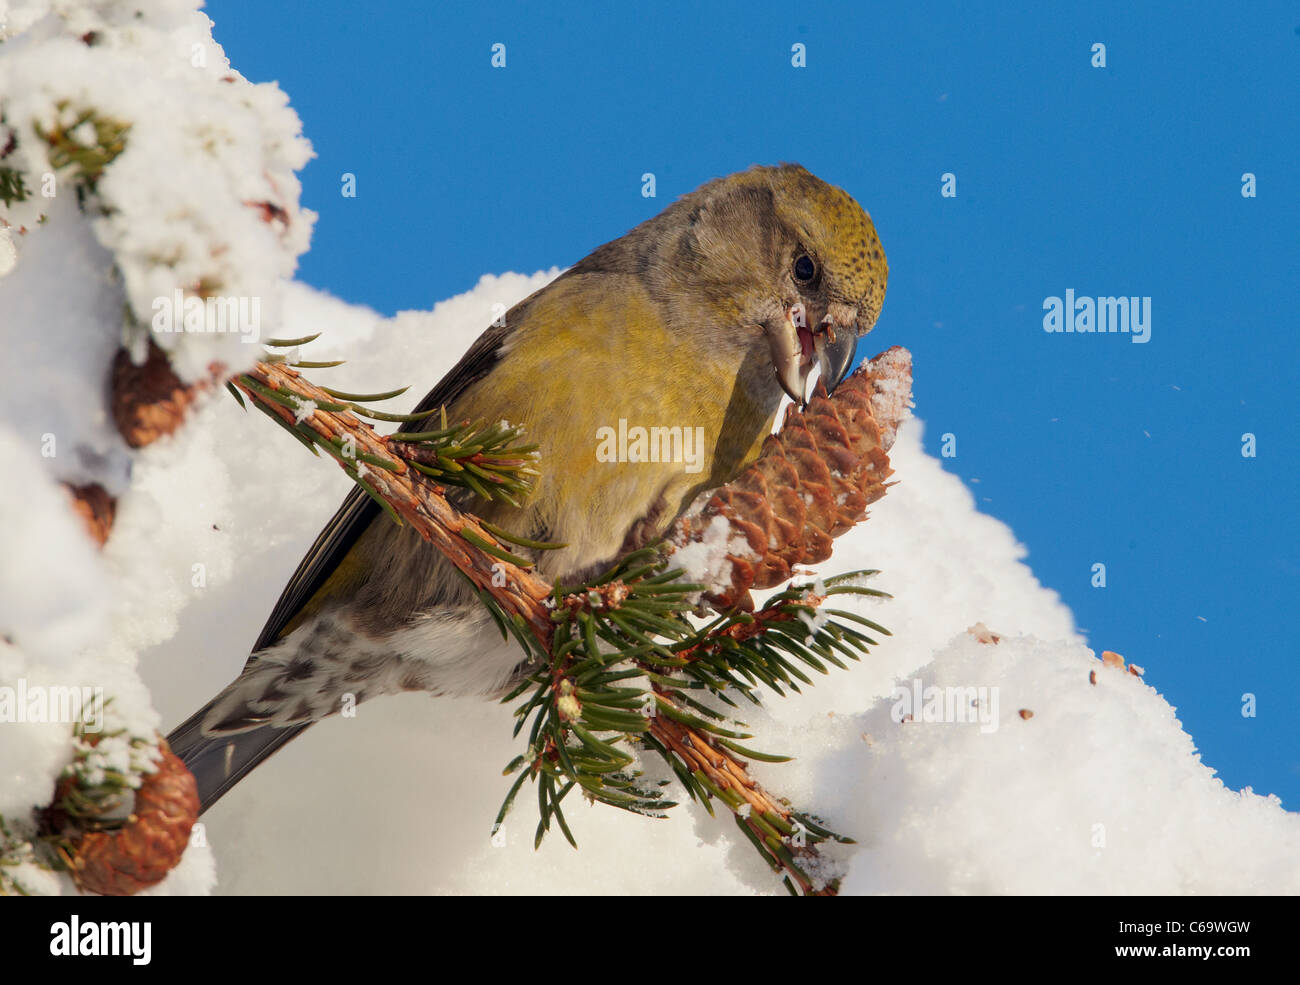 Common Crossbill, Red Crossbill (Loxia curvirostra). Female eating seeds from a spruce cone. - Stock Image